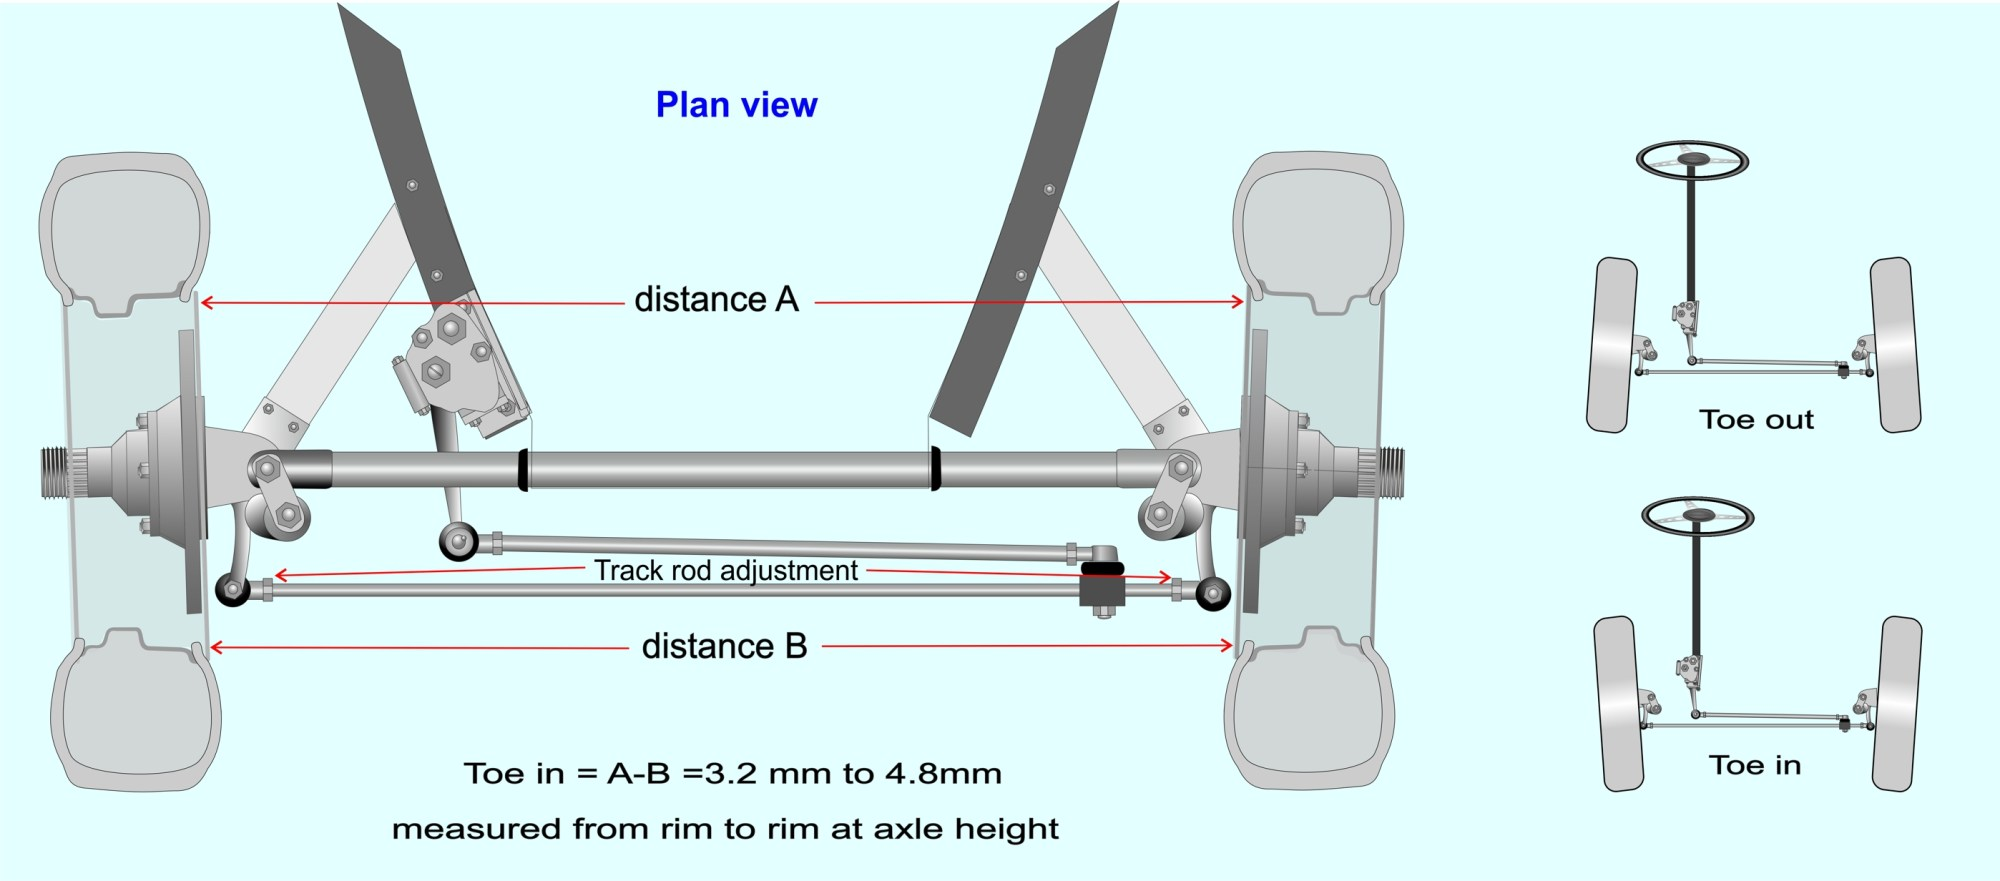 hight resolution of wheel alignment also referred to as tracking can affect tyre wear and straight line stability track is measured by comparing the distance at axle height